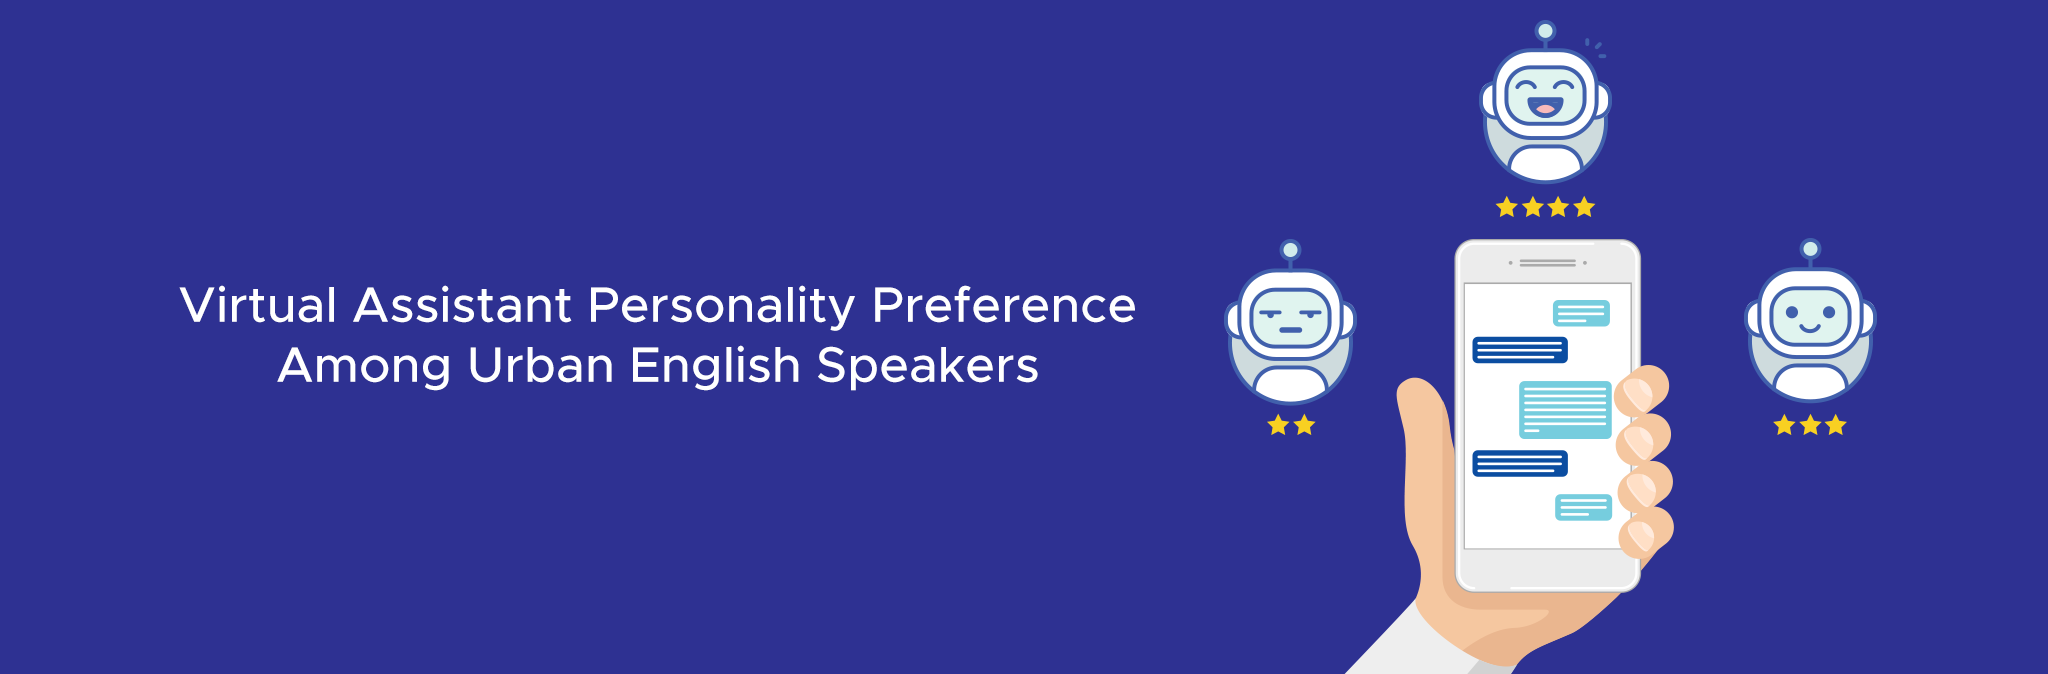 Bot Personality on Customer Experience